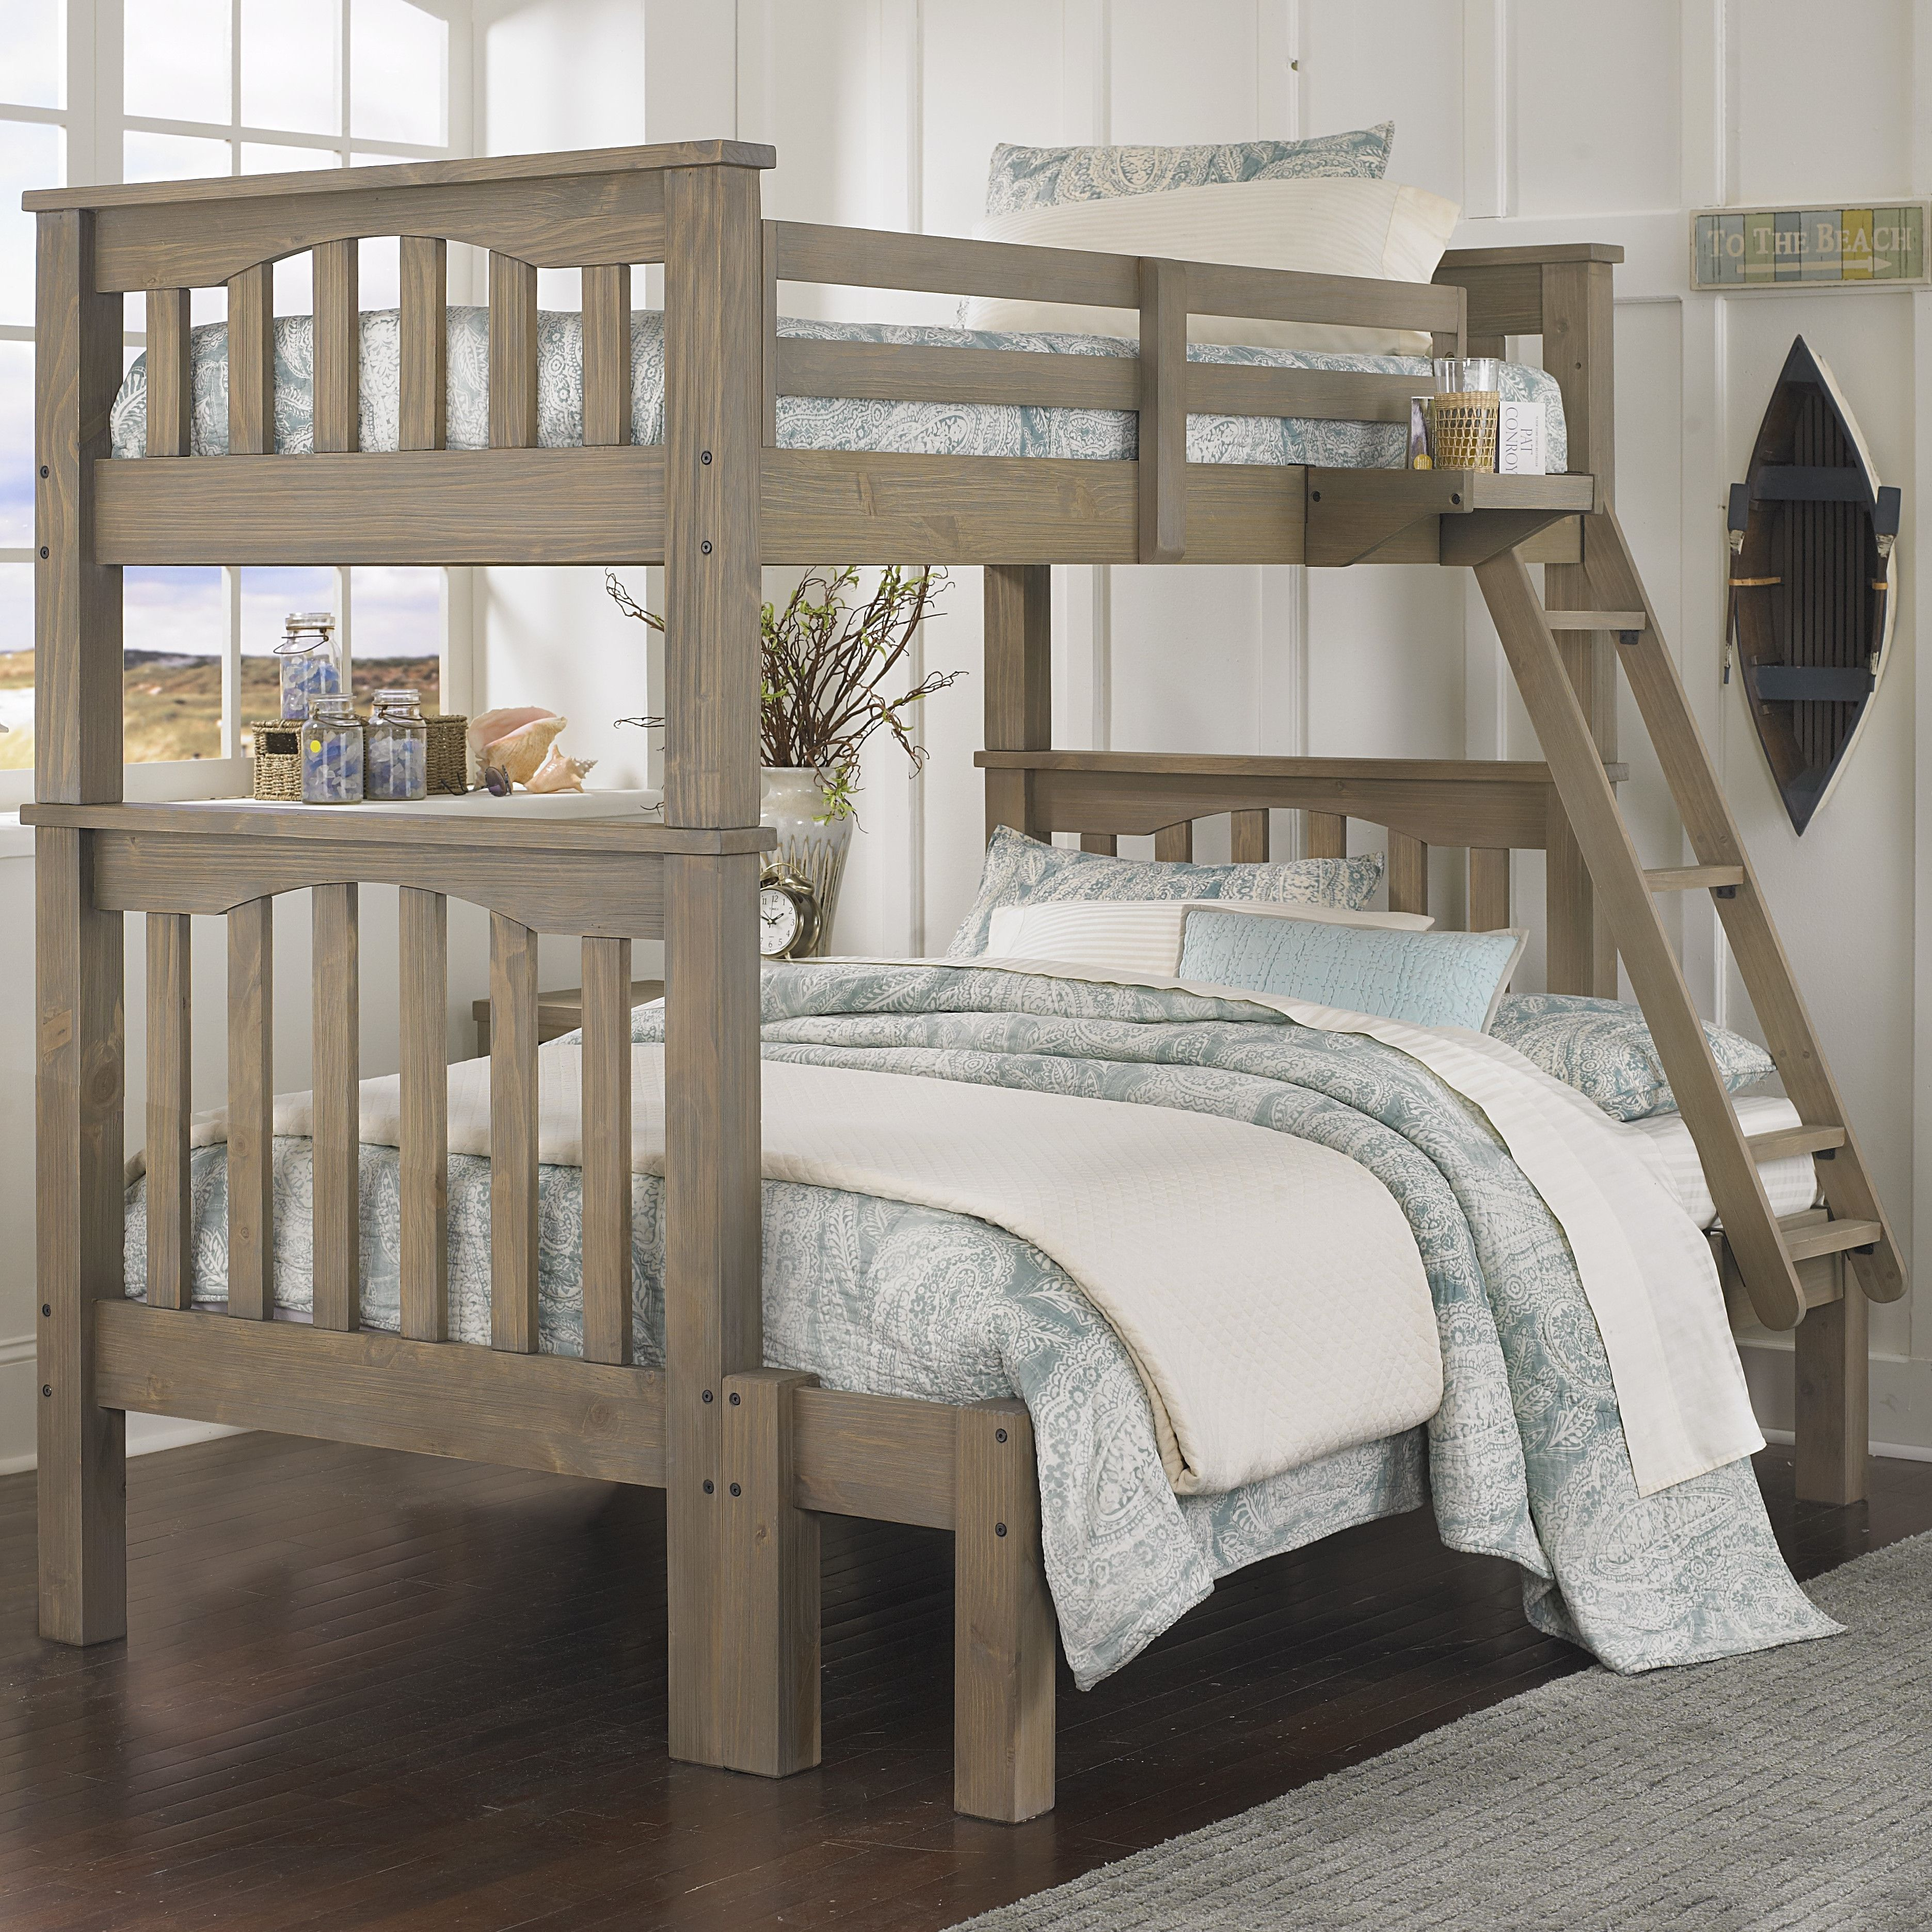 King size loft bed with stairs  NE Kids Highlands Harper Twin over Full Bunk  Girlsu new bedroom